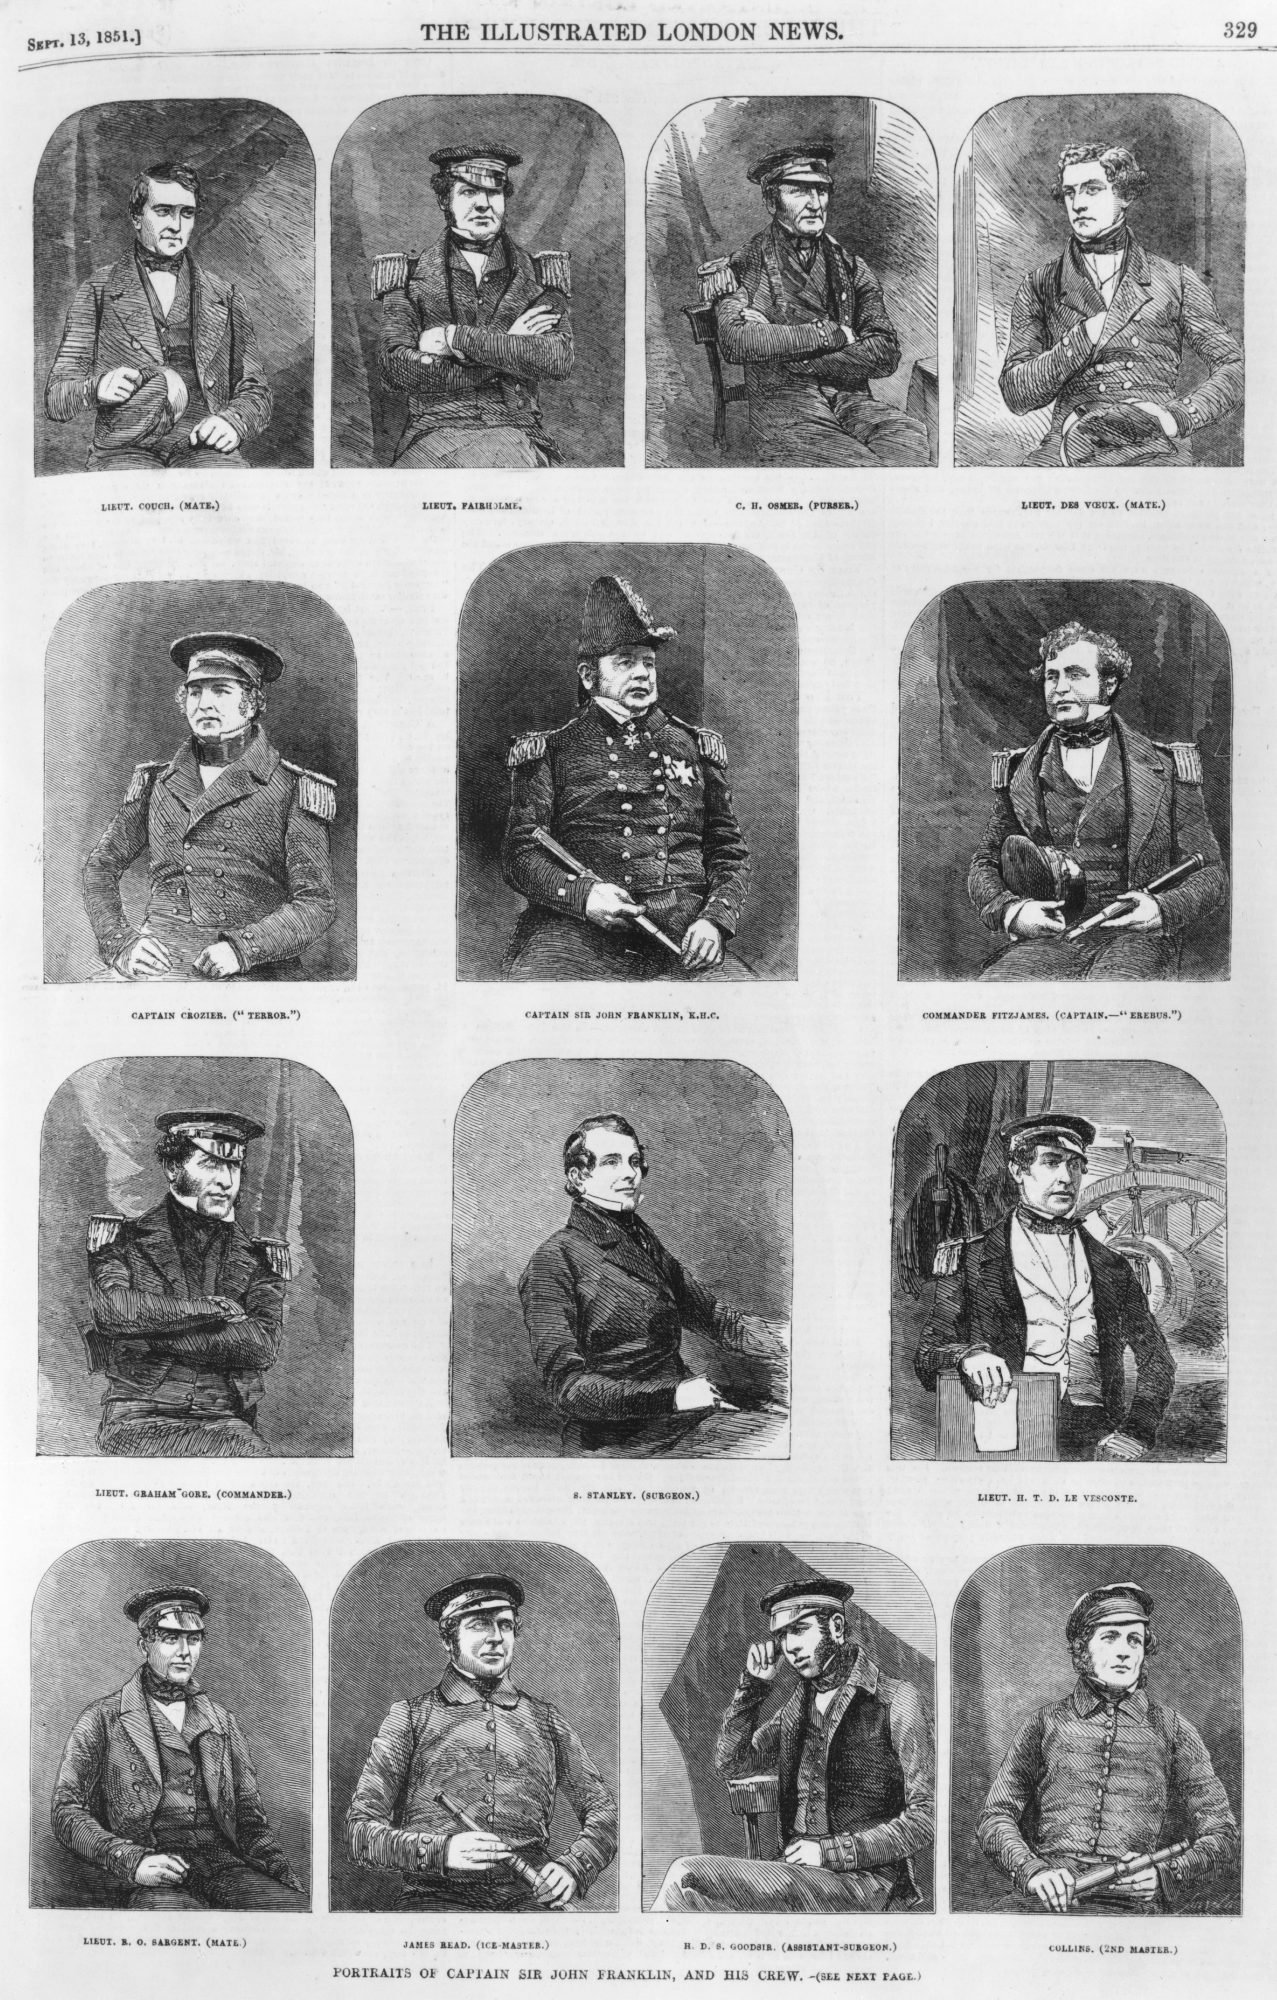 Portraits of Arctic explorer John Franklin and his crew, circa 1845. The entire expedition was lost on a voyage to the Northwest Passage. They are (left to right, from top) Lieutenant Couch (mate), Lieutenant Fairholme, C. H. Osmer (purser), Lieutenant des Voeux (mate), Captain Crozier of the 'Terror', Captain Sir John Franklin, Commander Fitzjames of the 'Erebus', Lieutenant Graham Gore (Commander), S. Stanley (surgeon), Lieutenant H. T. D. le Vesconte, Lieutenant B. O. Sargent (mate), James Read (ice-master), H. D. S. Goodsir (assistant surgeon) and Collins (second master). Original Publication : Illustrated London News - pub. 13th September 1851 (Photo by Hulton Archive/Getty Images)